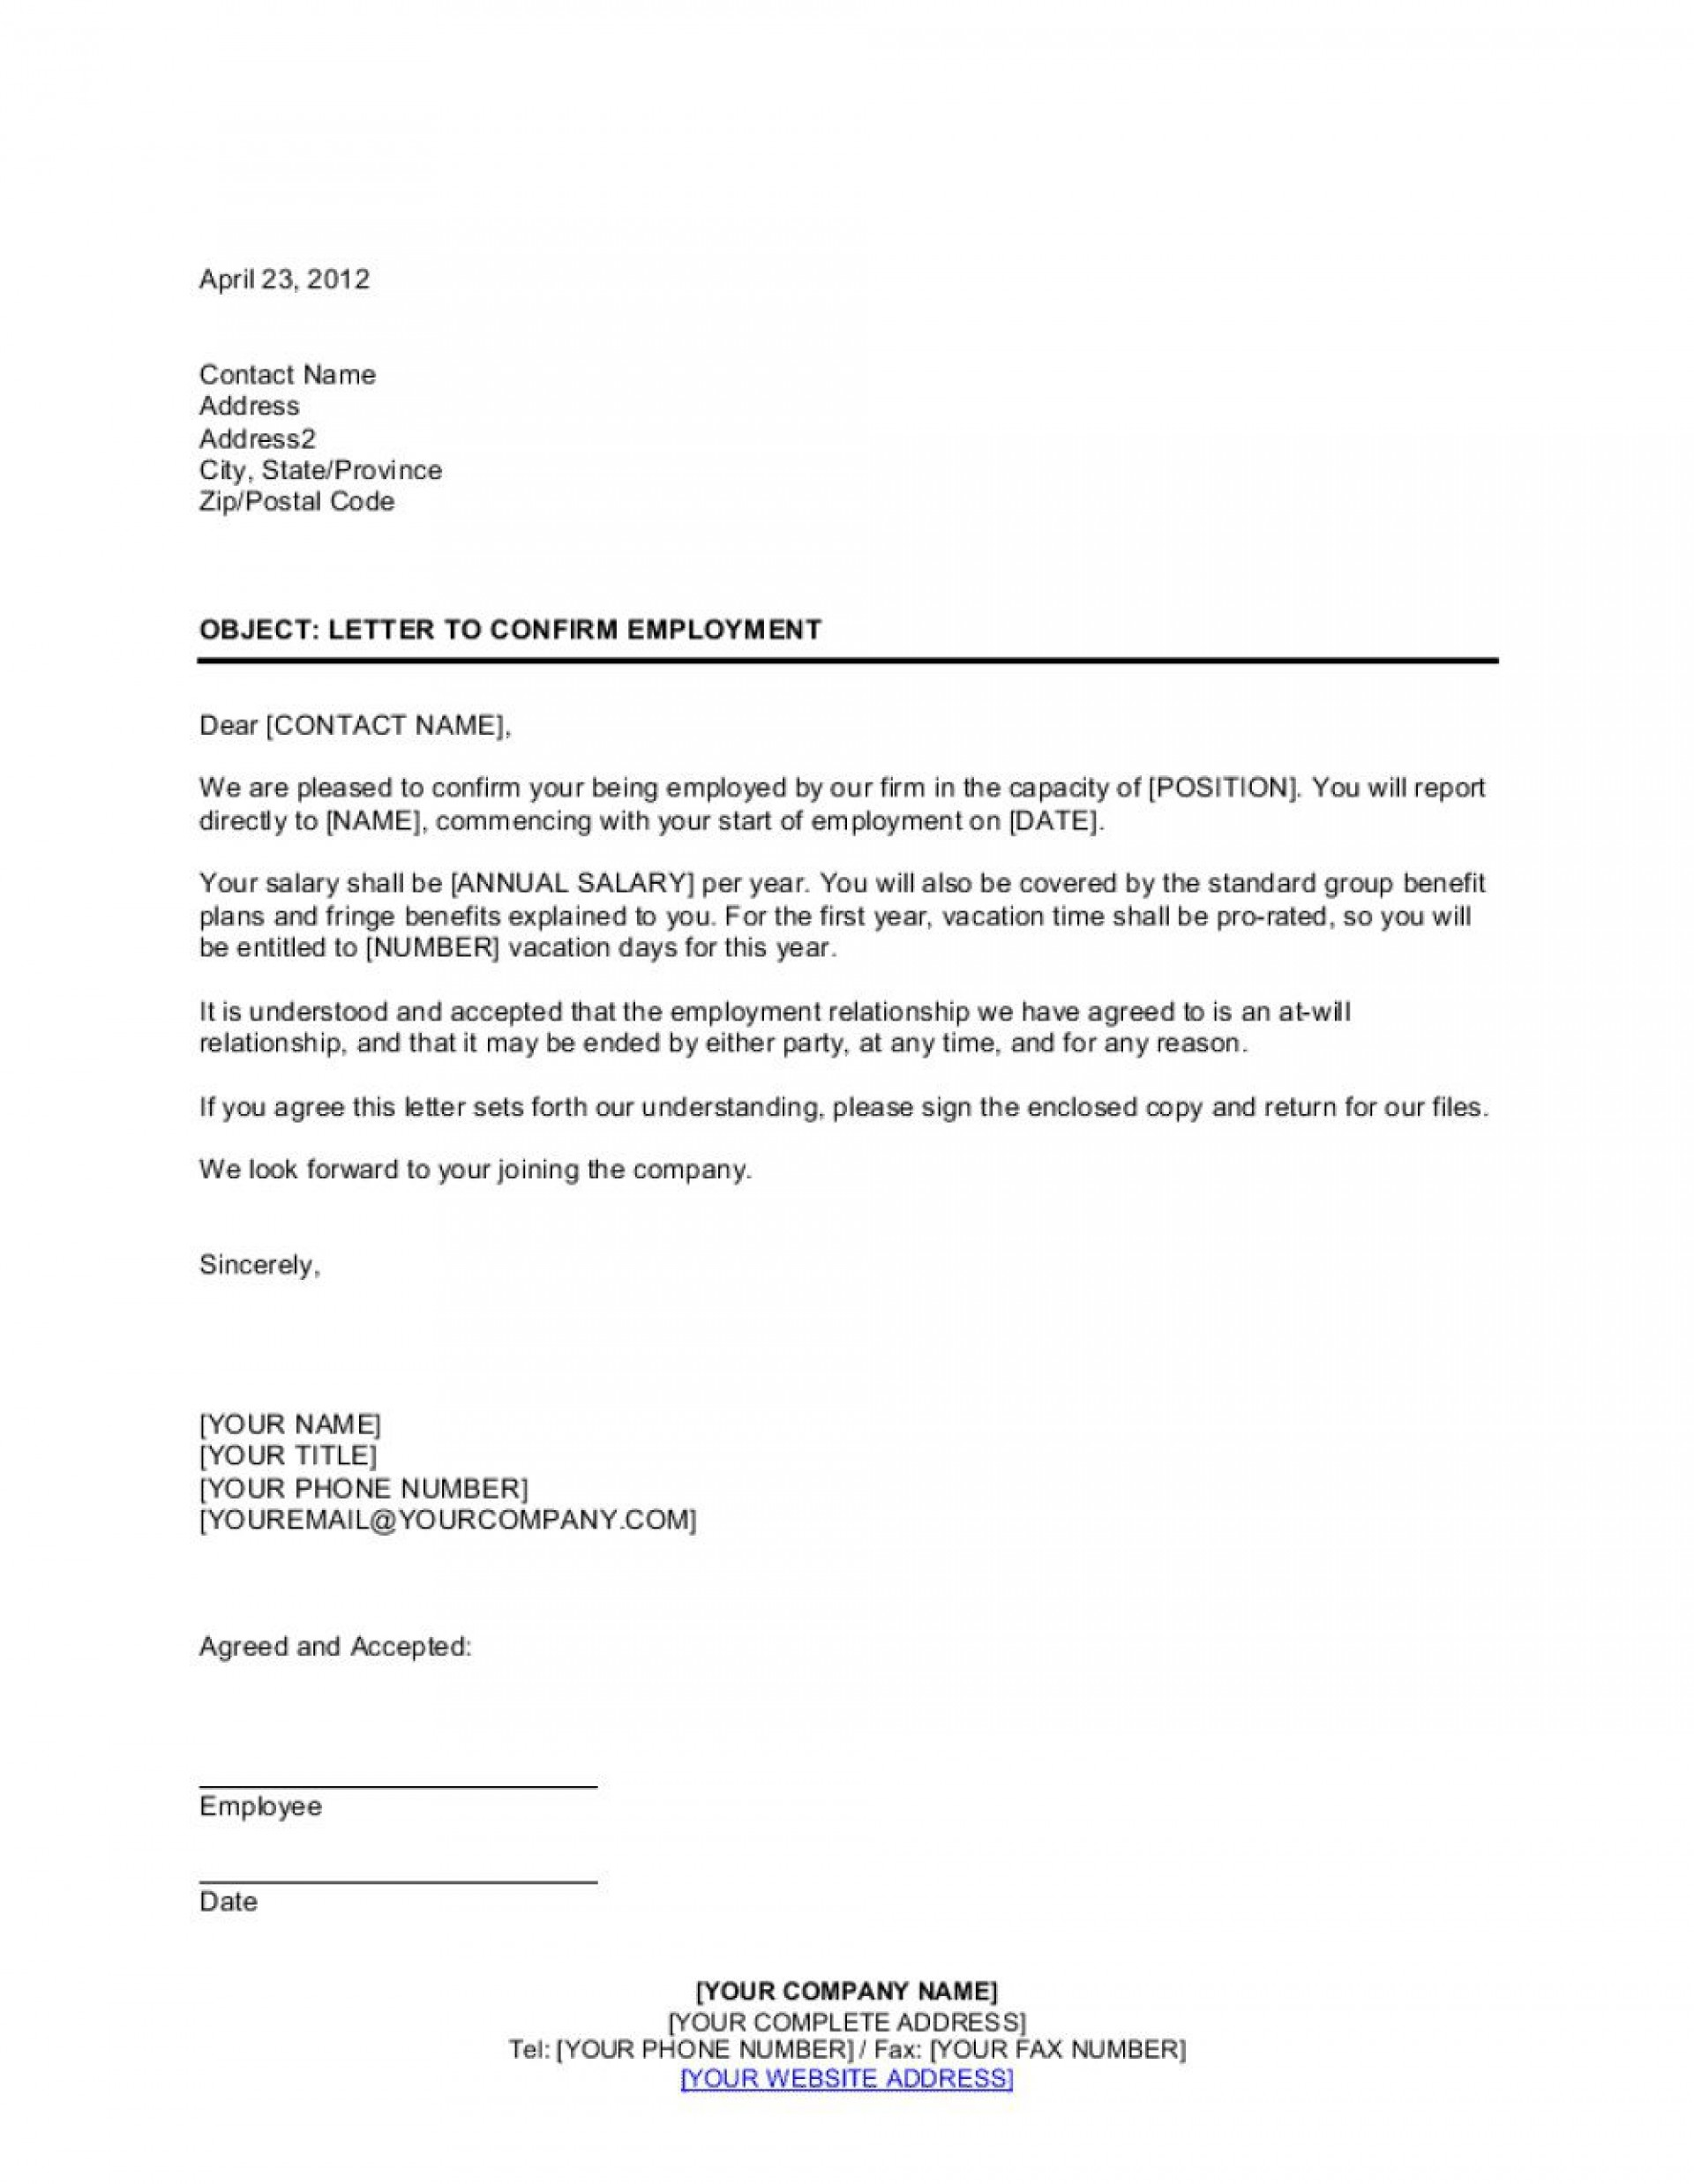 004 Impressive Letter Of Employment Template High Resolution  Confirmation Canada For Mortgage1920